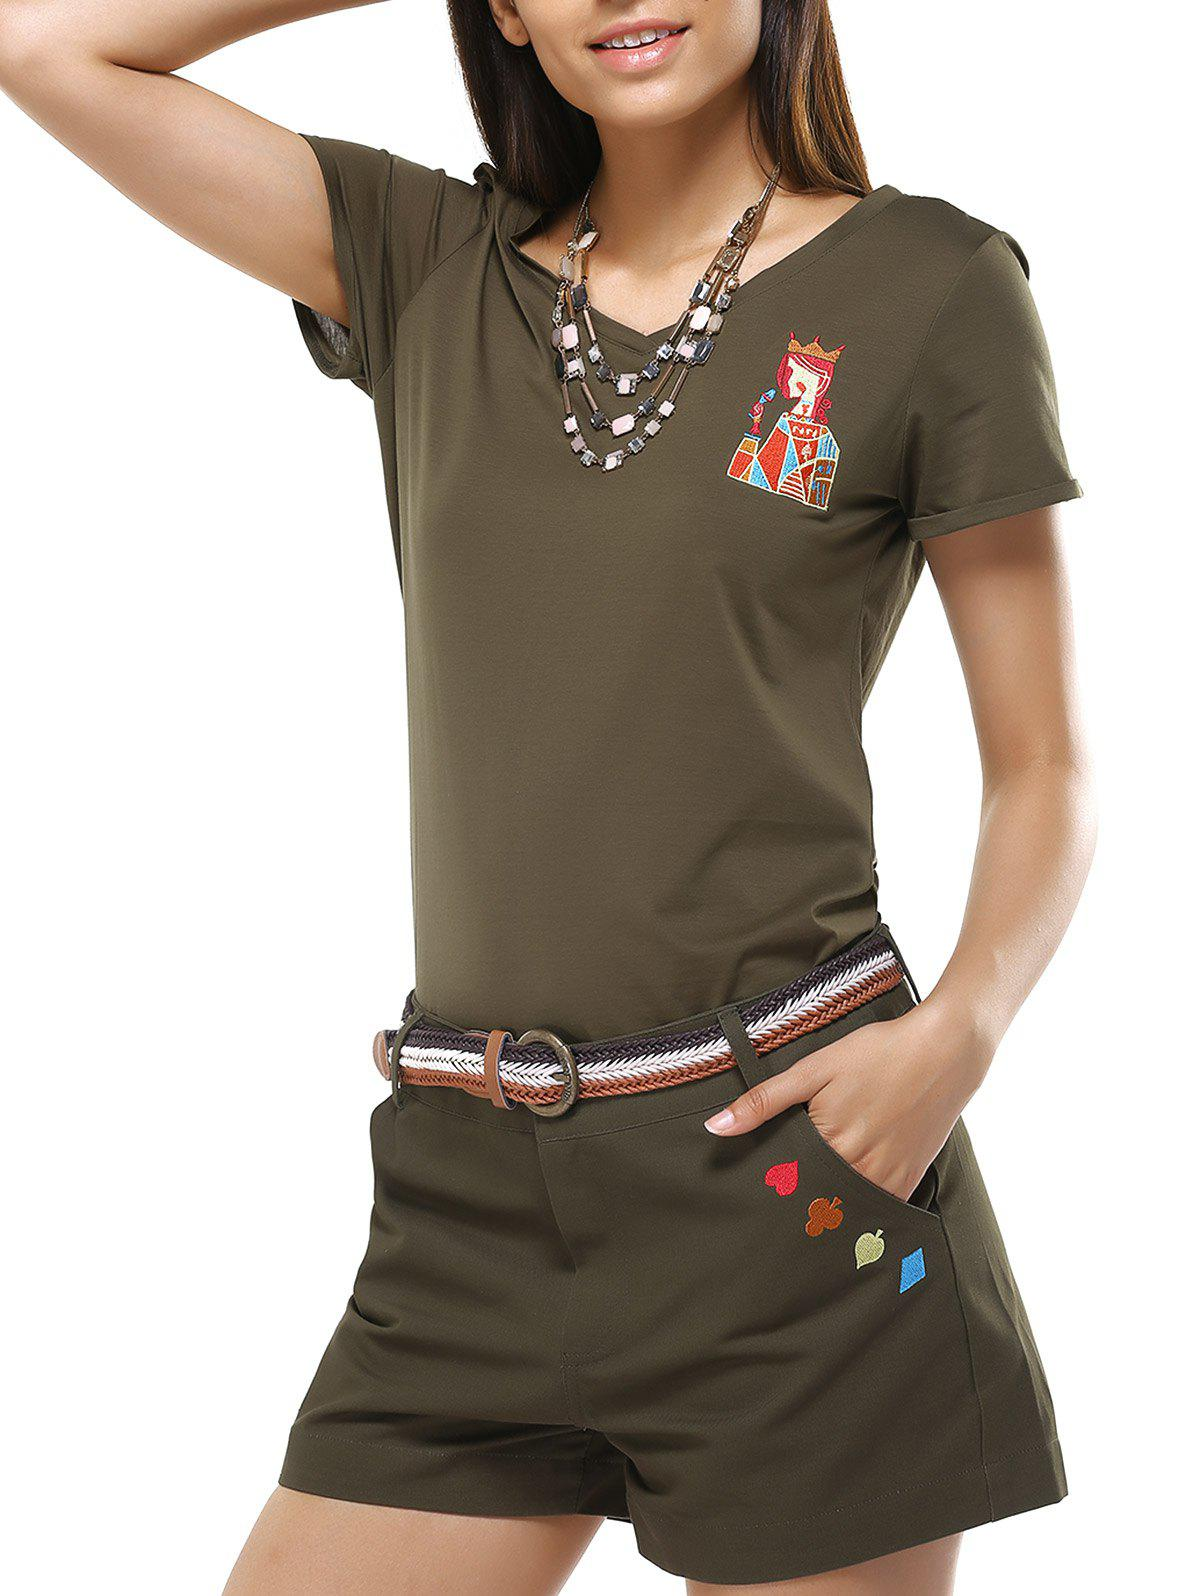 Chic Women's V-Neck Girl Pattern T-Shirt and Shorts Twinset